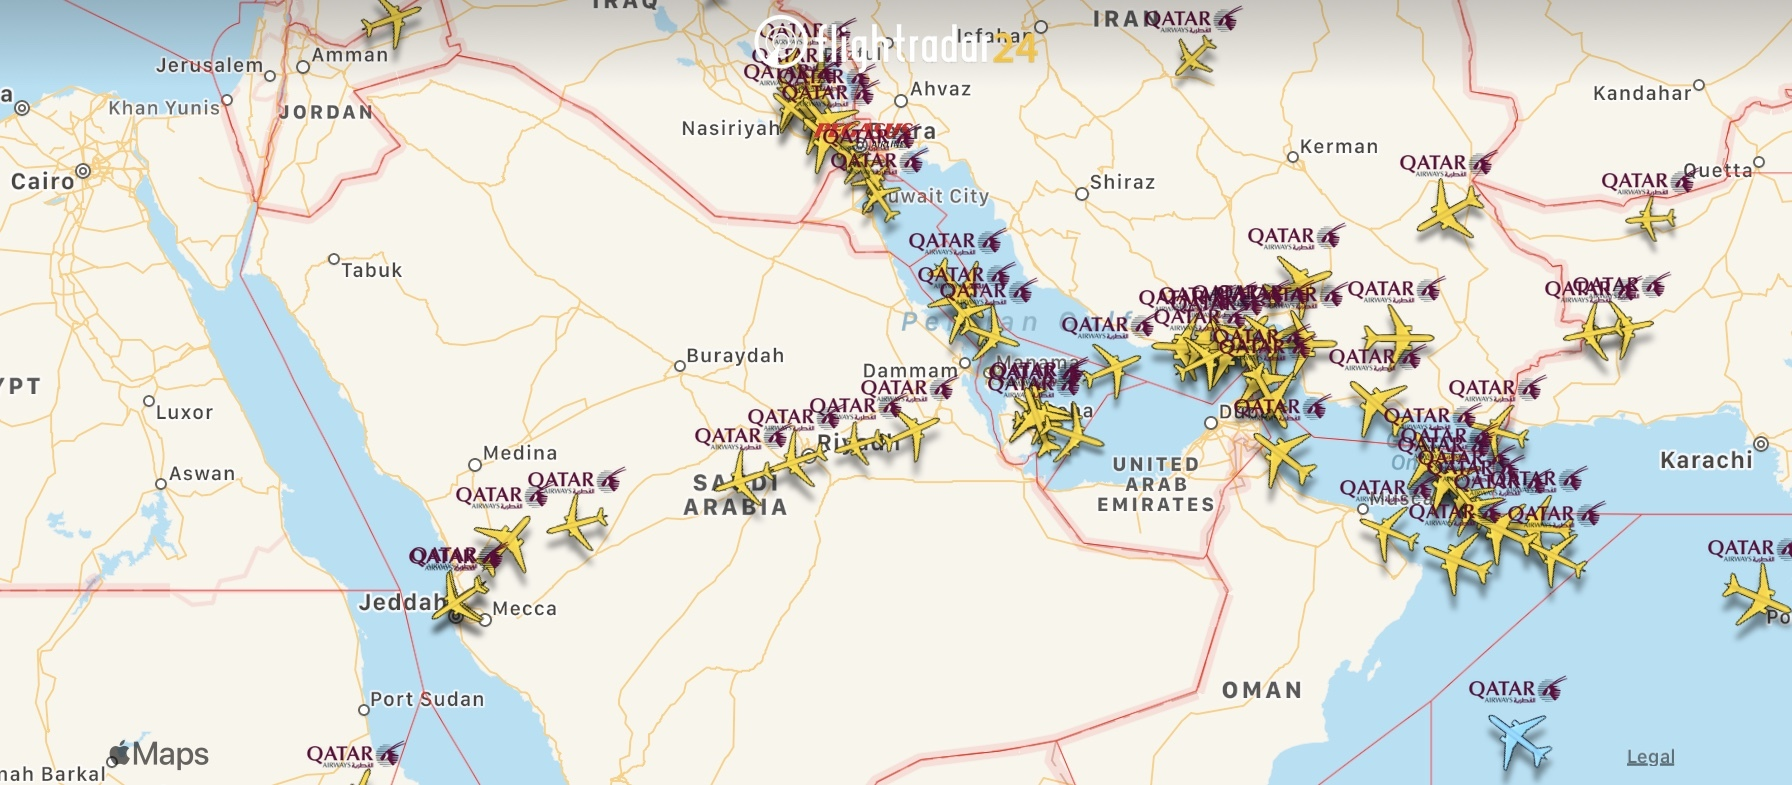 Qatar Airways flights over Saudi Arabian airspace